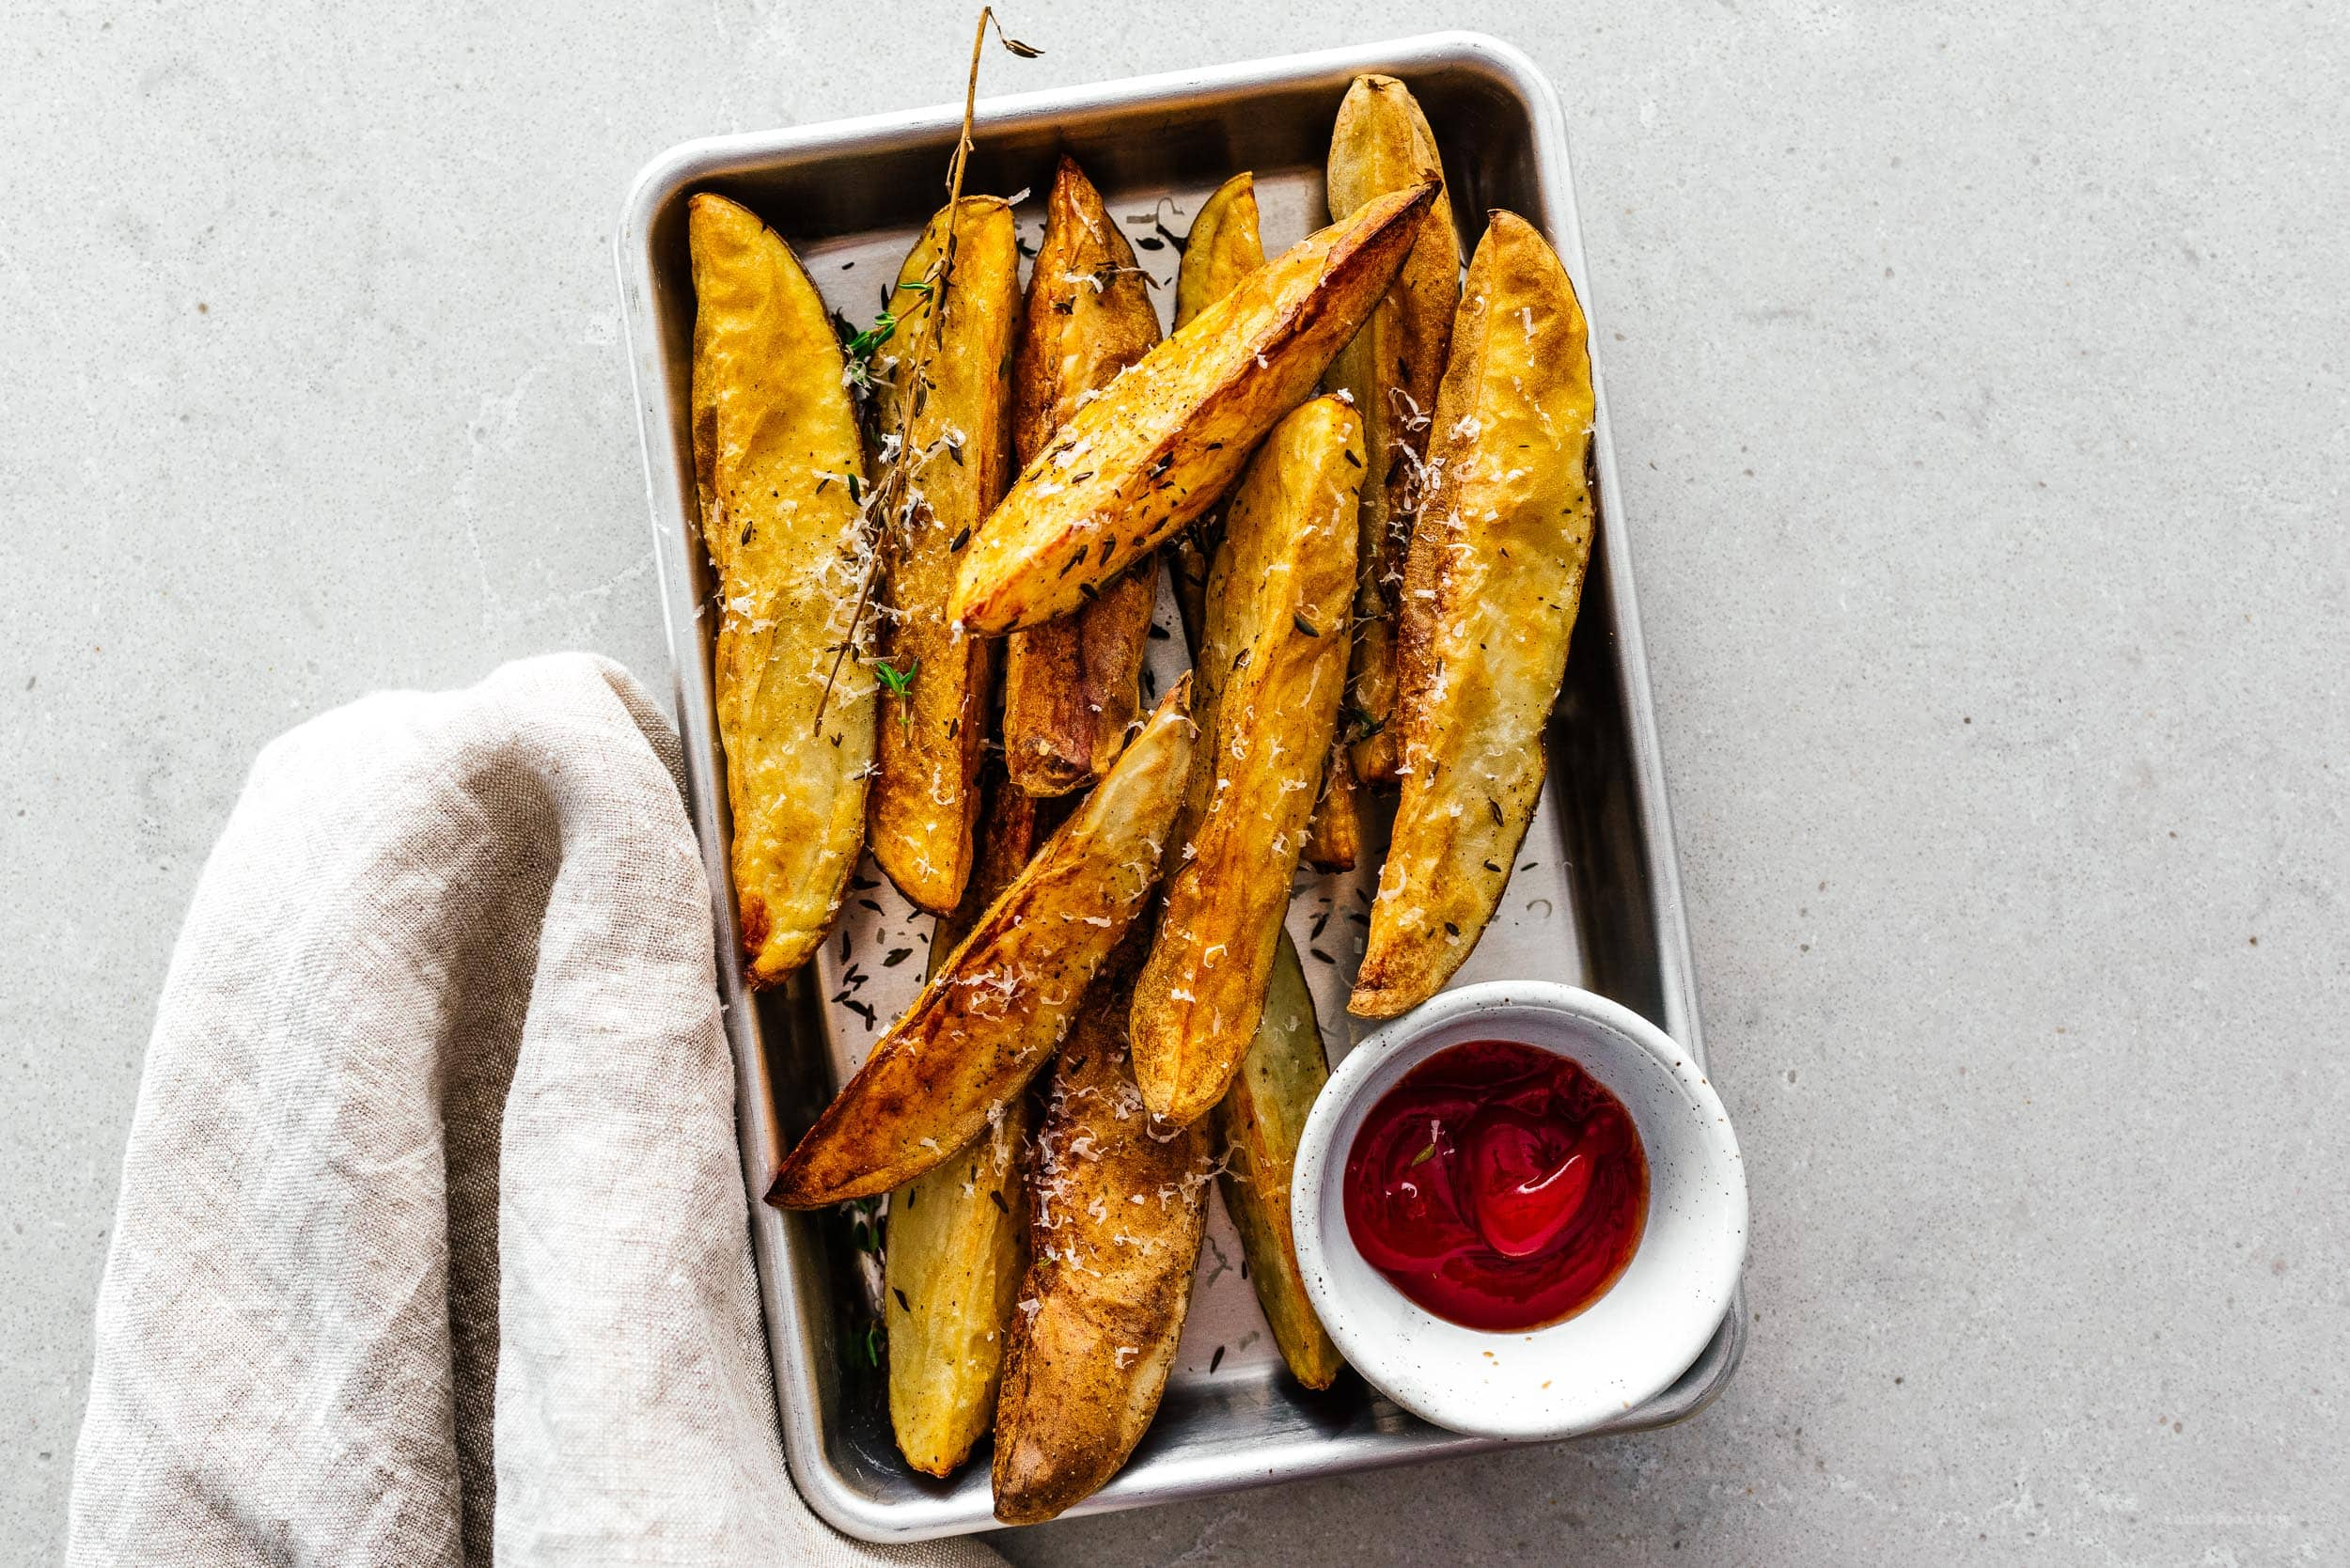 crispy air fryer potatoes | www.iamafoodblog.com